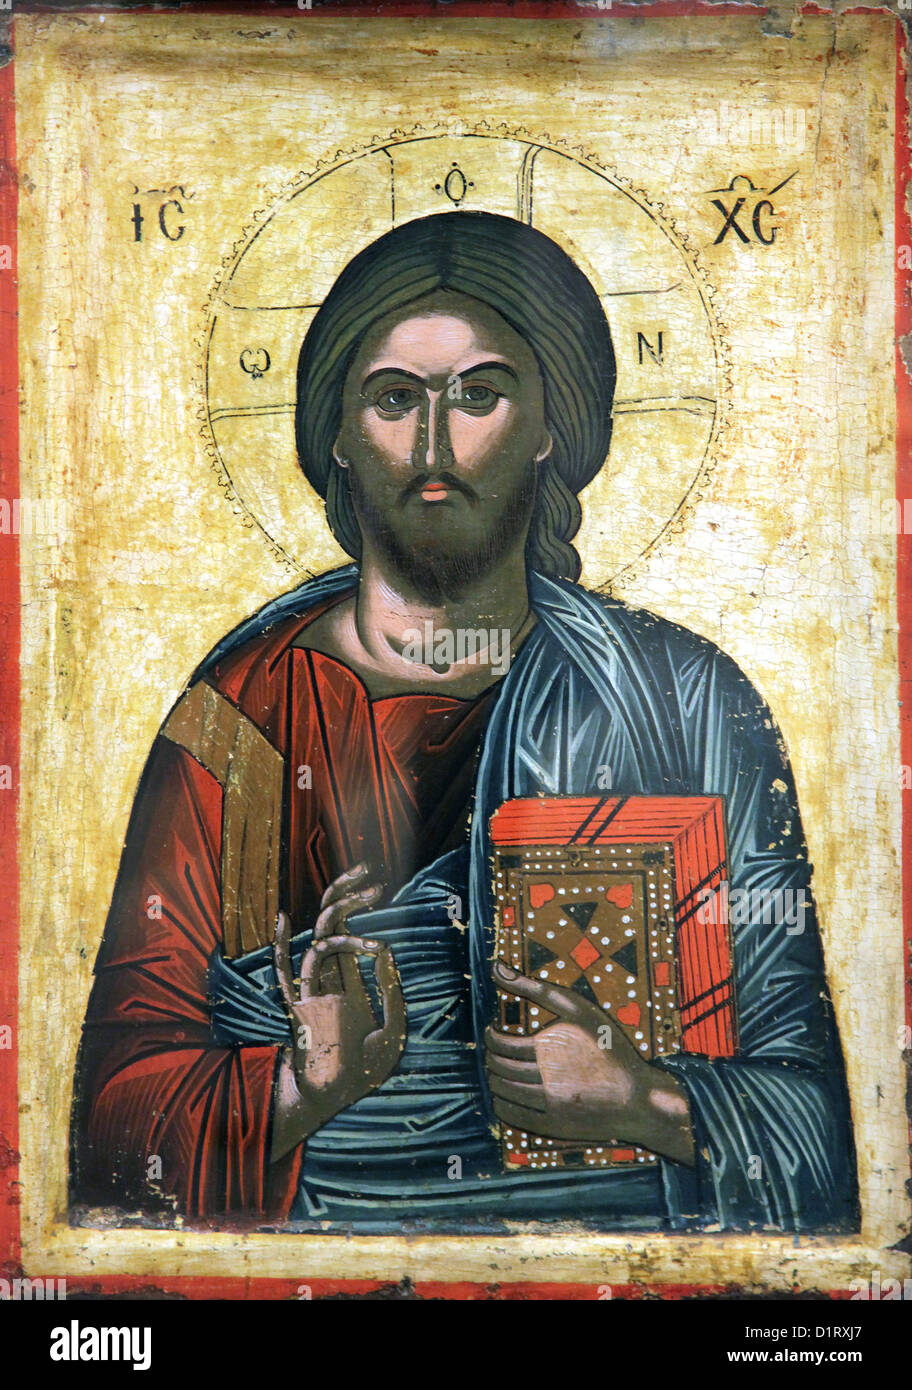 Christian iconography.Christ.Christus Pantocrator icon.egg tempera on wooden panel.post-byzantine. 17th century. - Stock Image